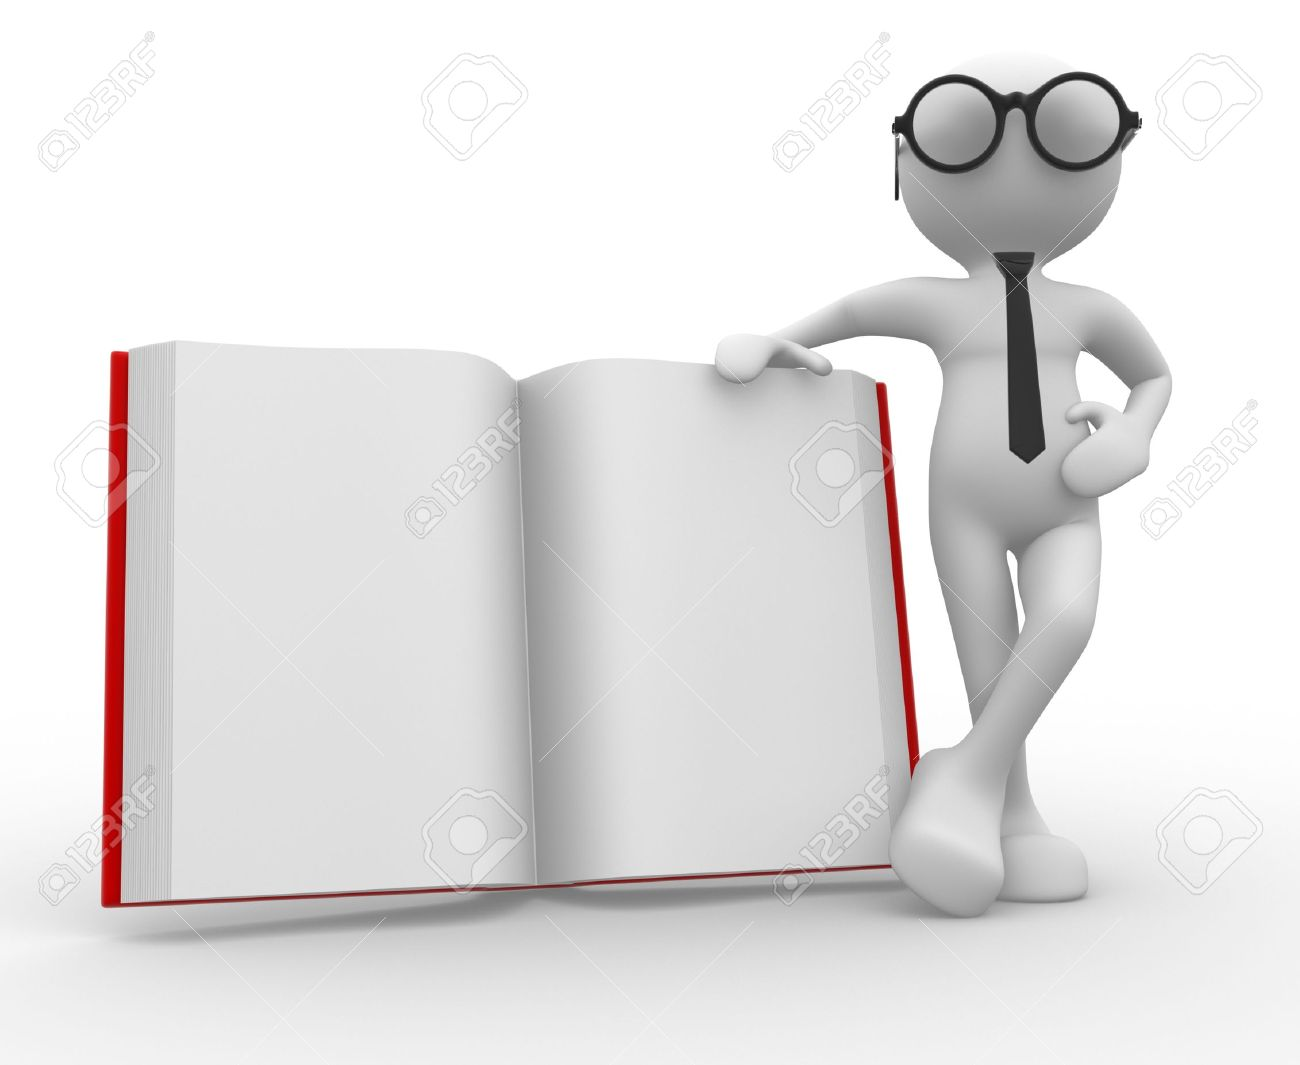 3d people - man, person and a book. Stock Photo - 14815467